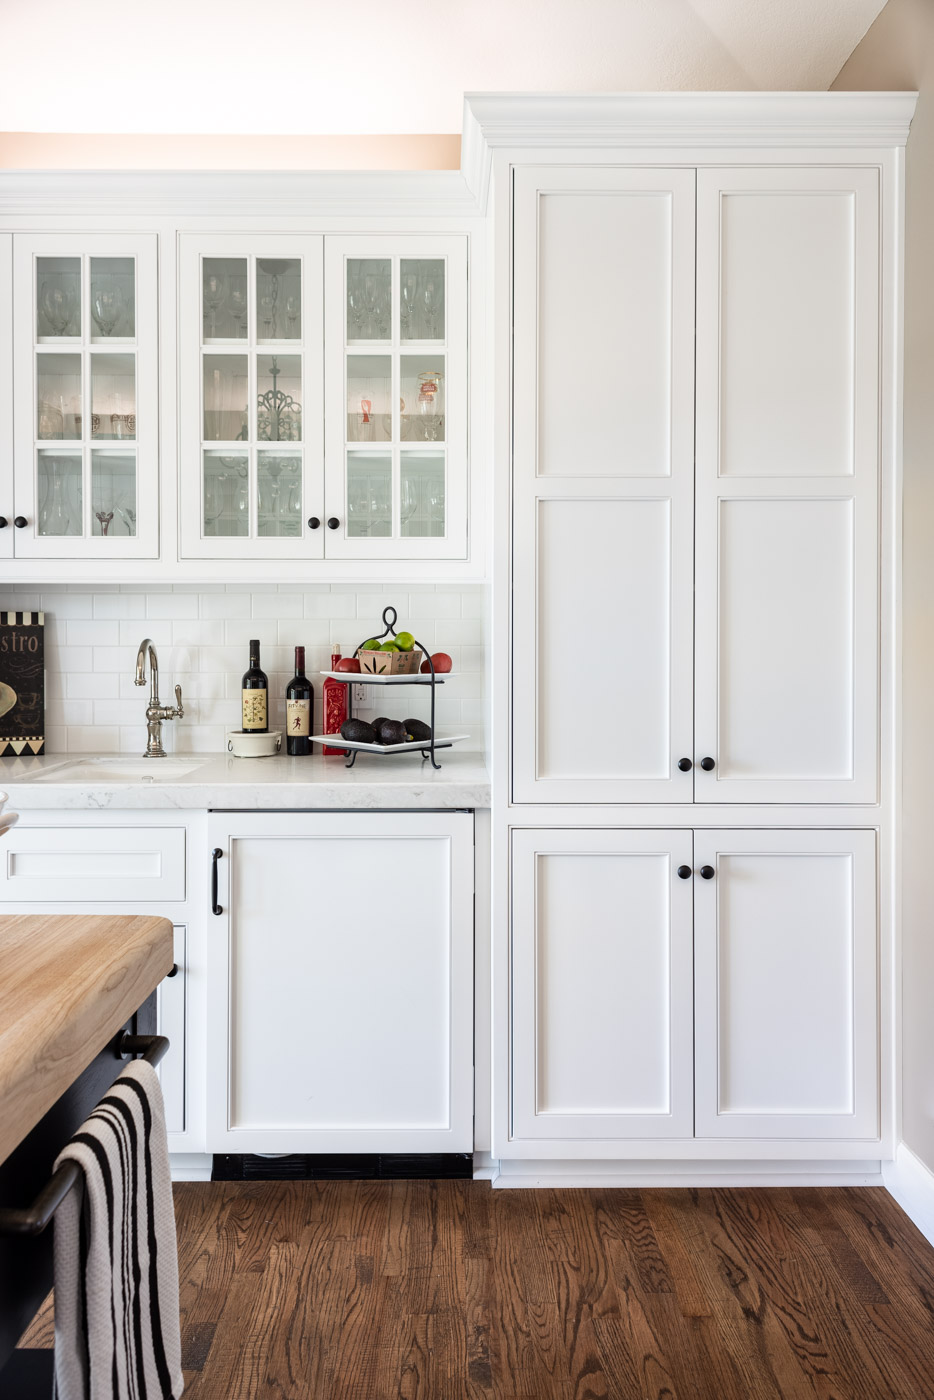 A small kitchen space with a straight layout and custom white painted cabinets